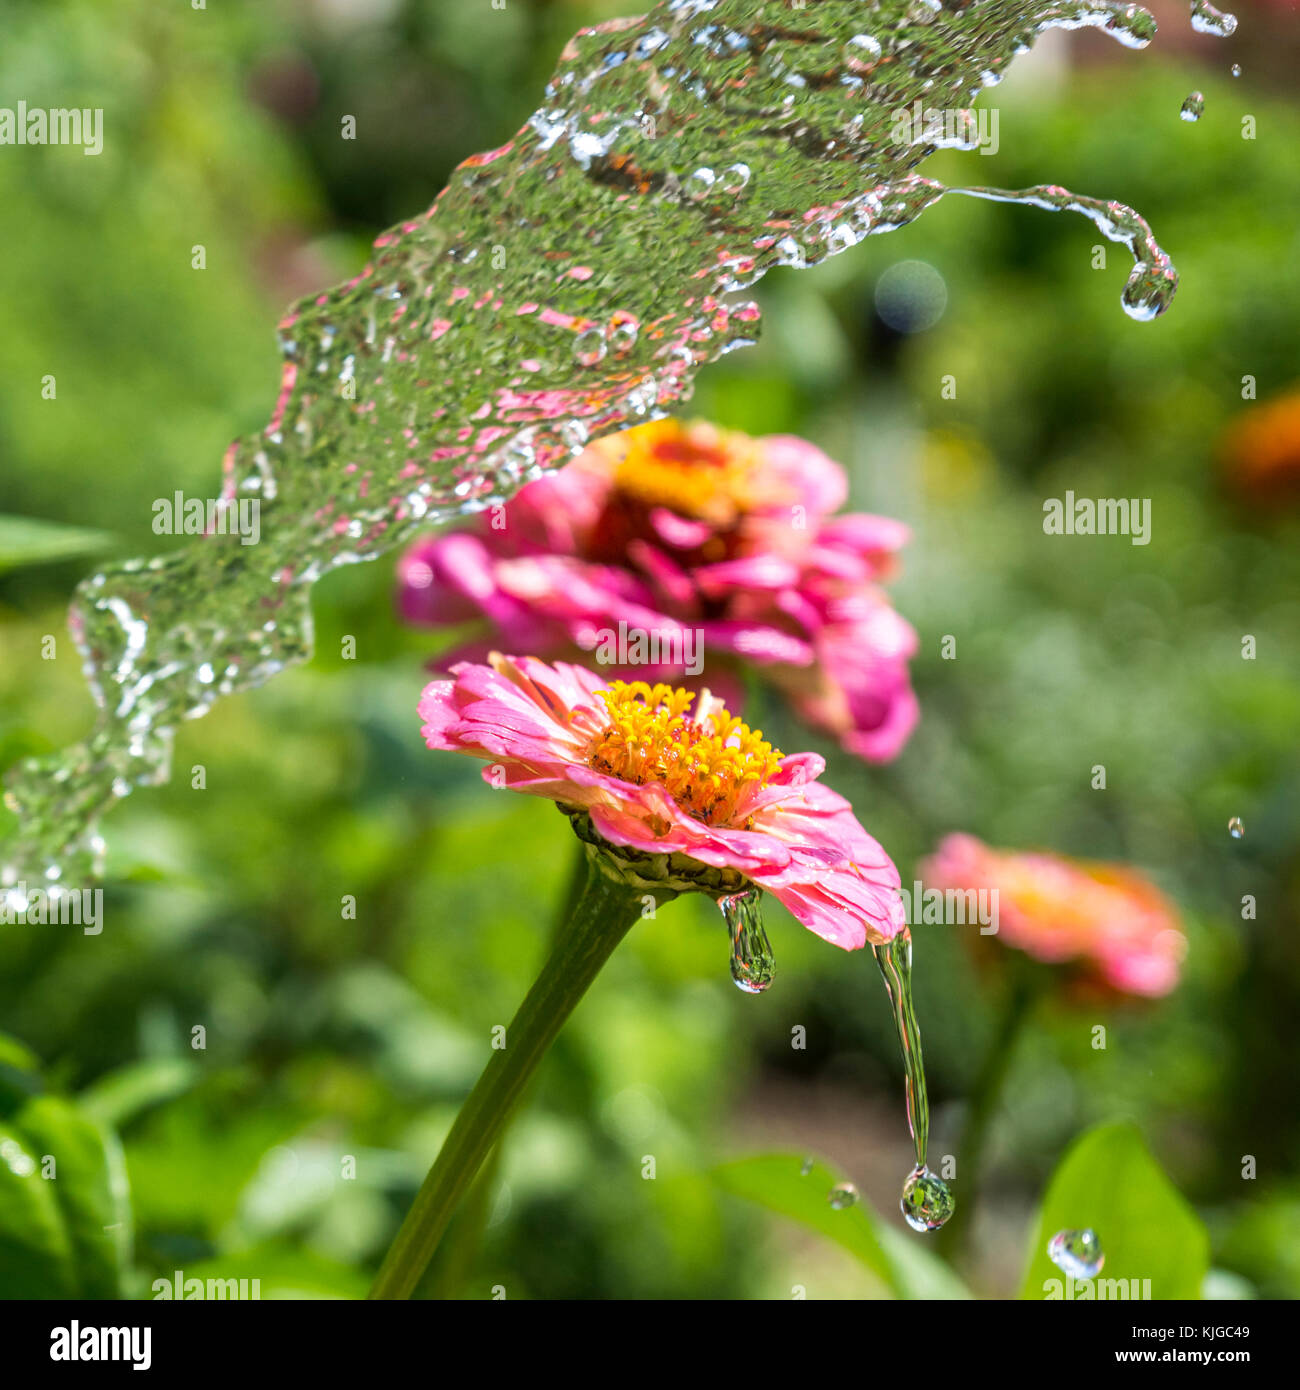 Flush of water and wet Gerbera - Stock Image